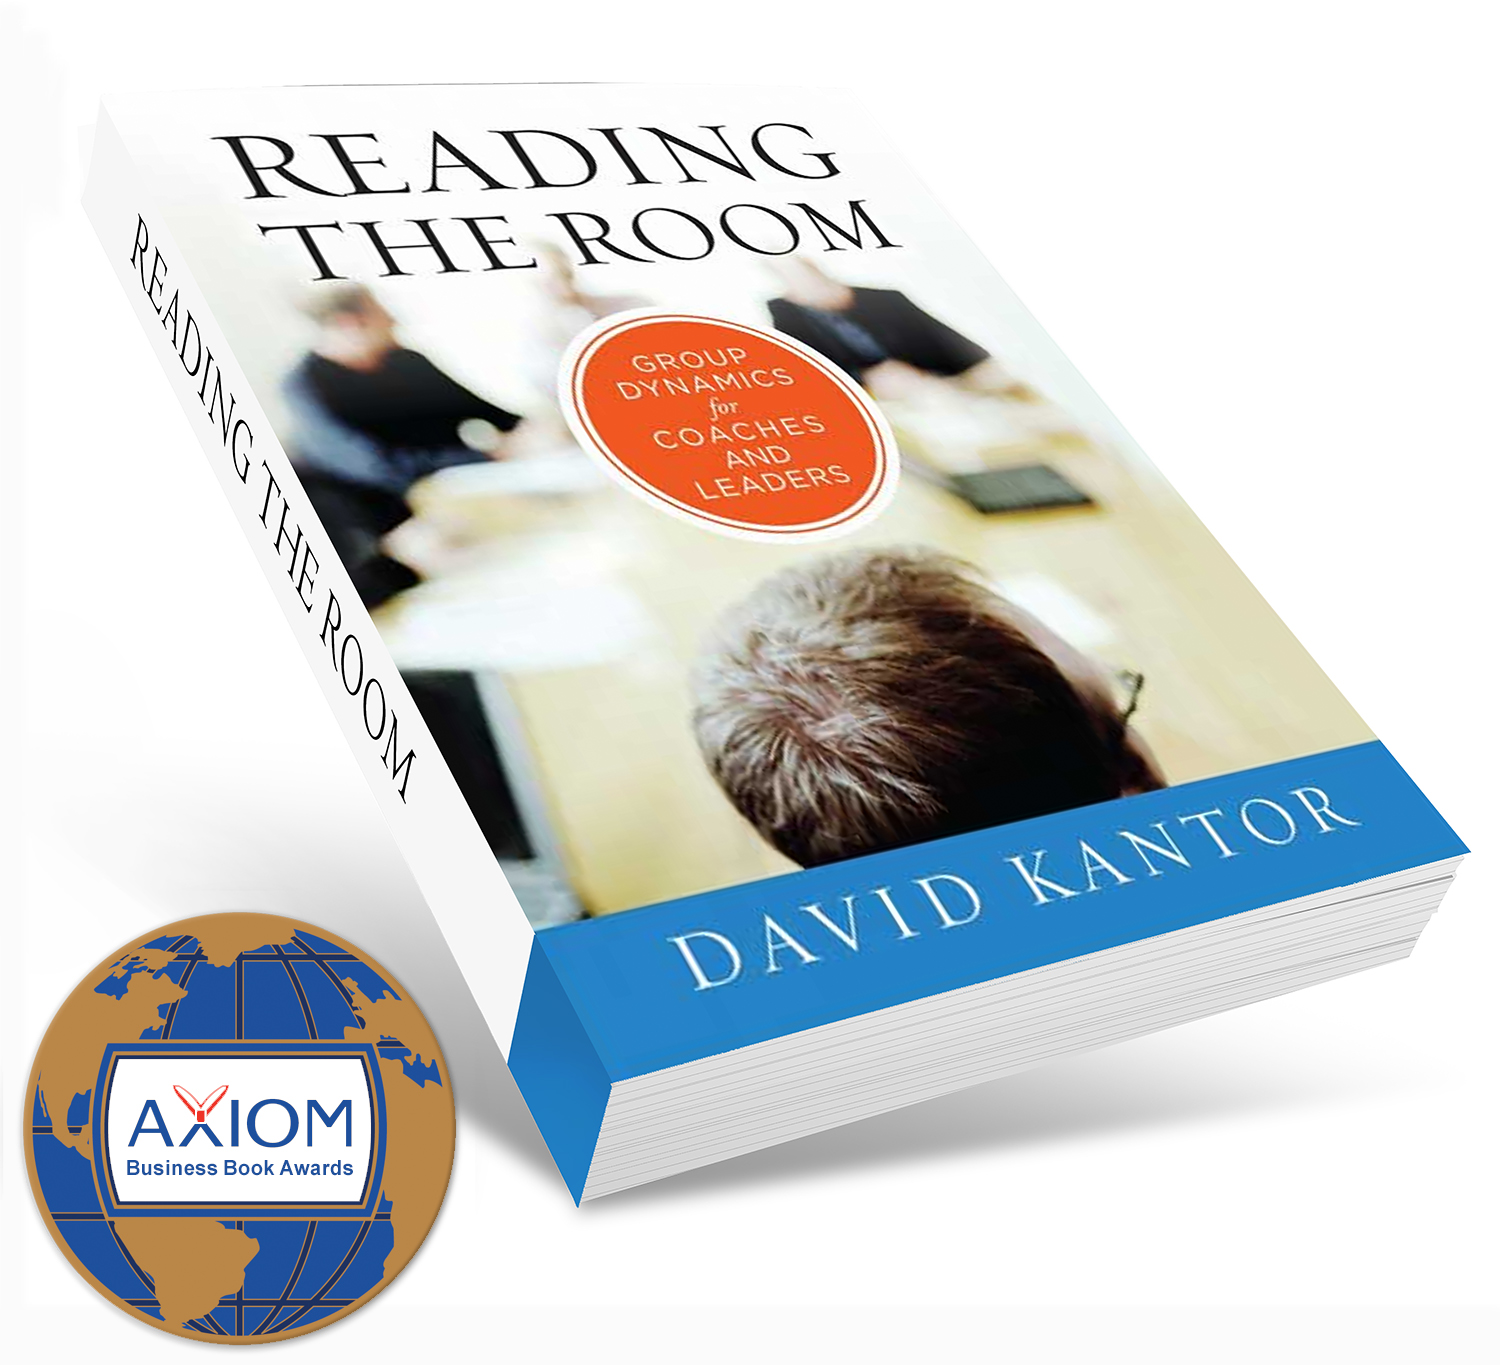 Reading the Room , by David Kantor (1st ed.: Jossey-Bass, a Wiley Imprint, 2012)